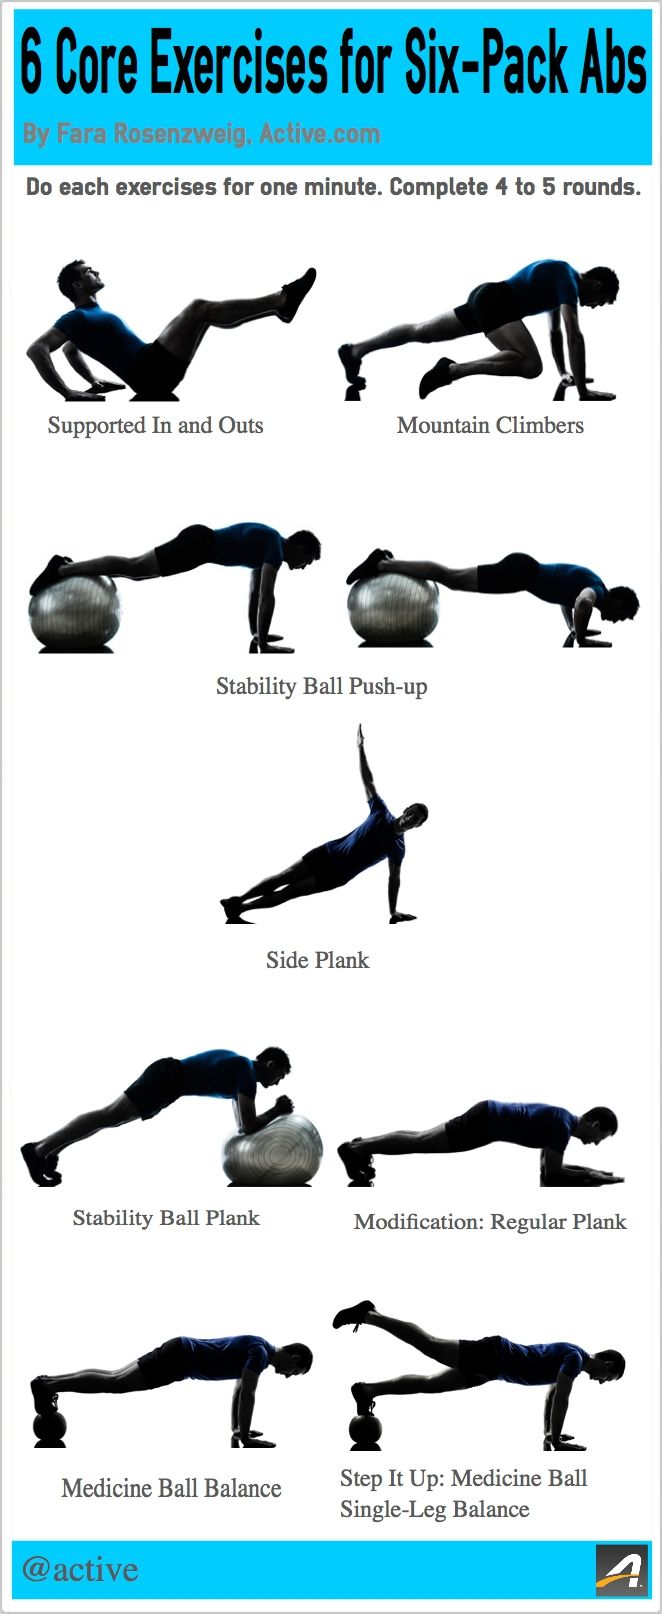 6 Core Exercises for 6-Pack Abs